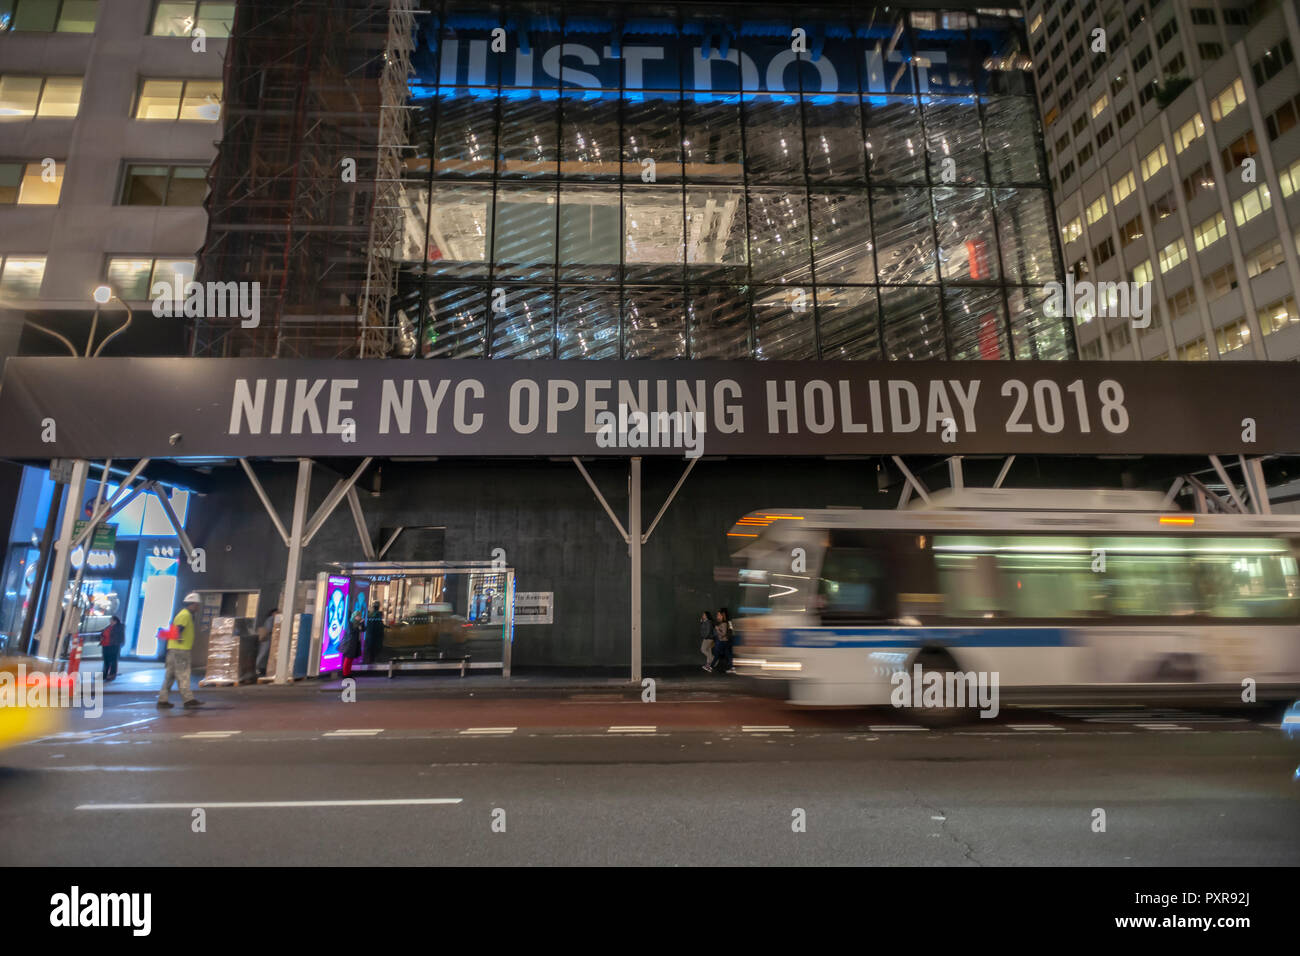 64b4aaff6b476 Construction on the new Nike flagship store on Fifth avenue in New York on  Tuesday